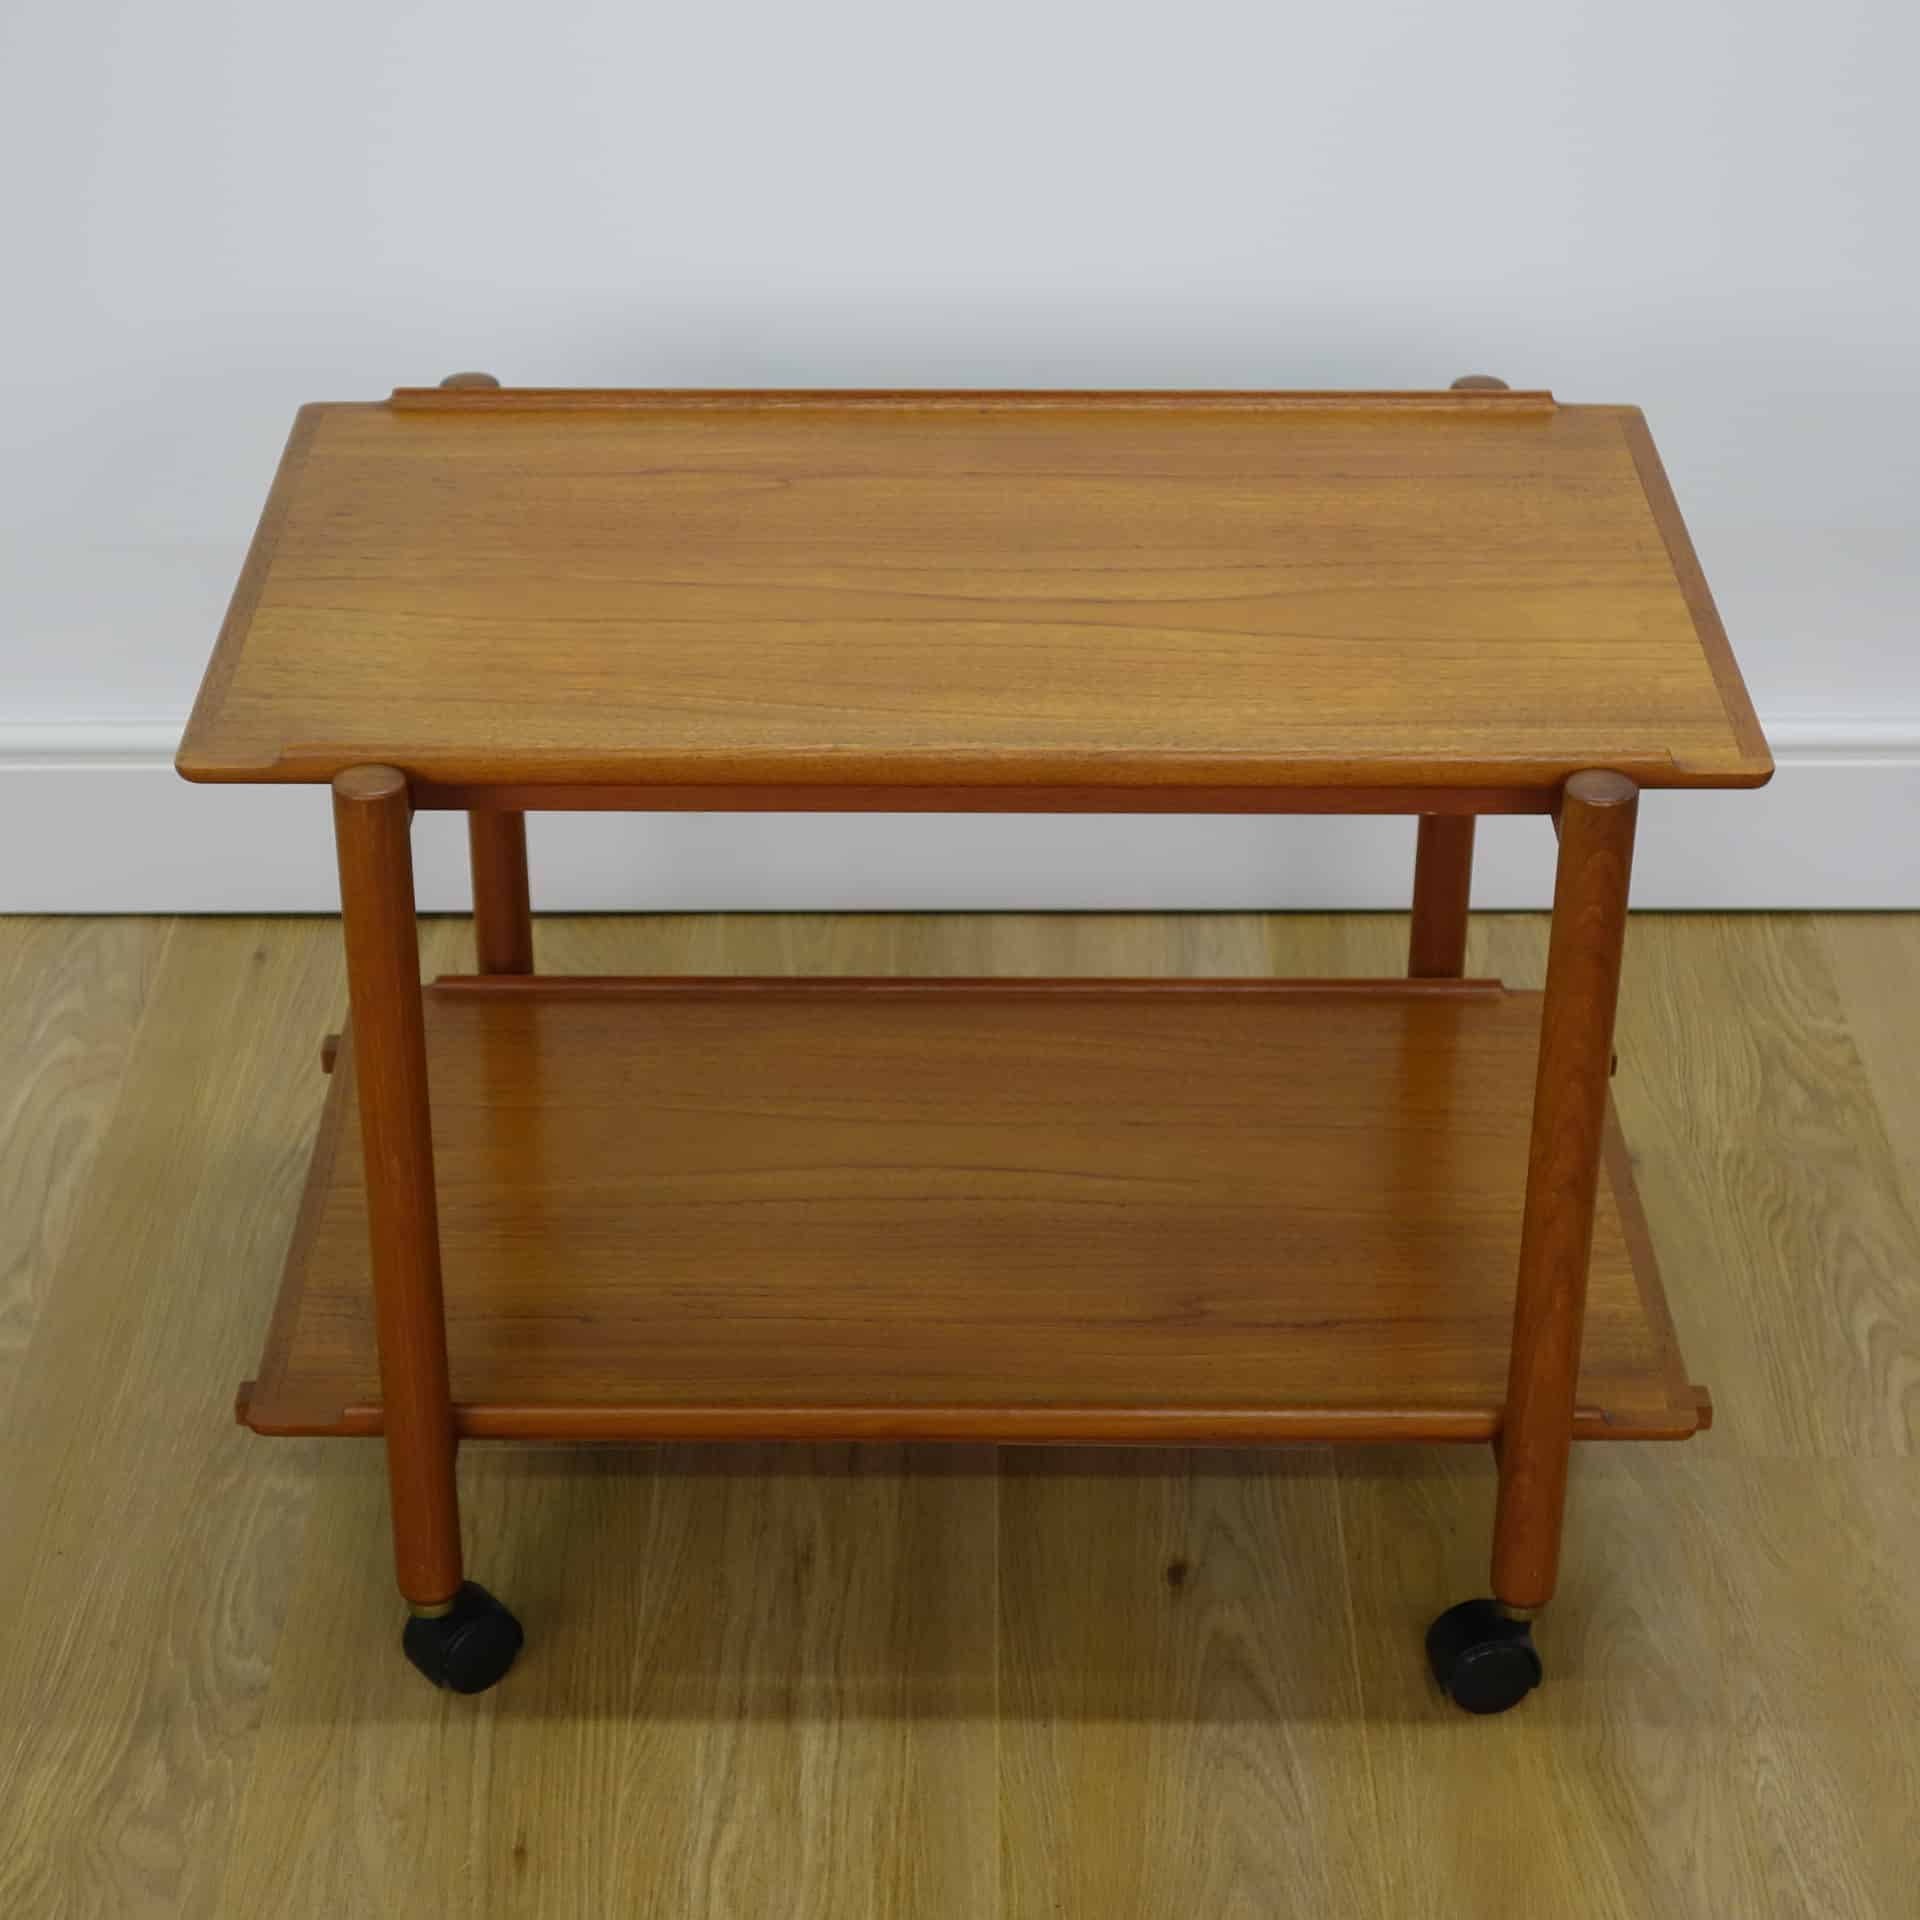 1960s Danish serving trolley by Poul Hundevad